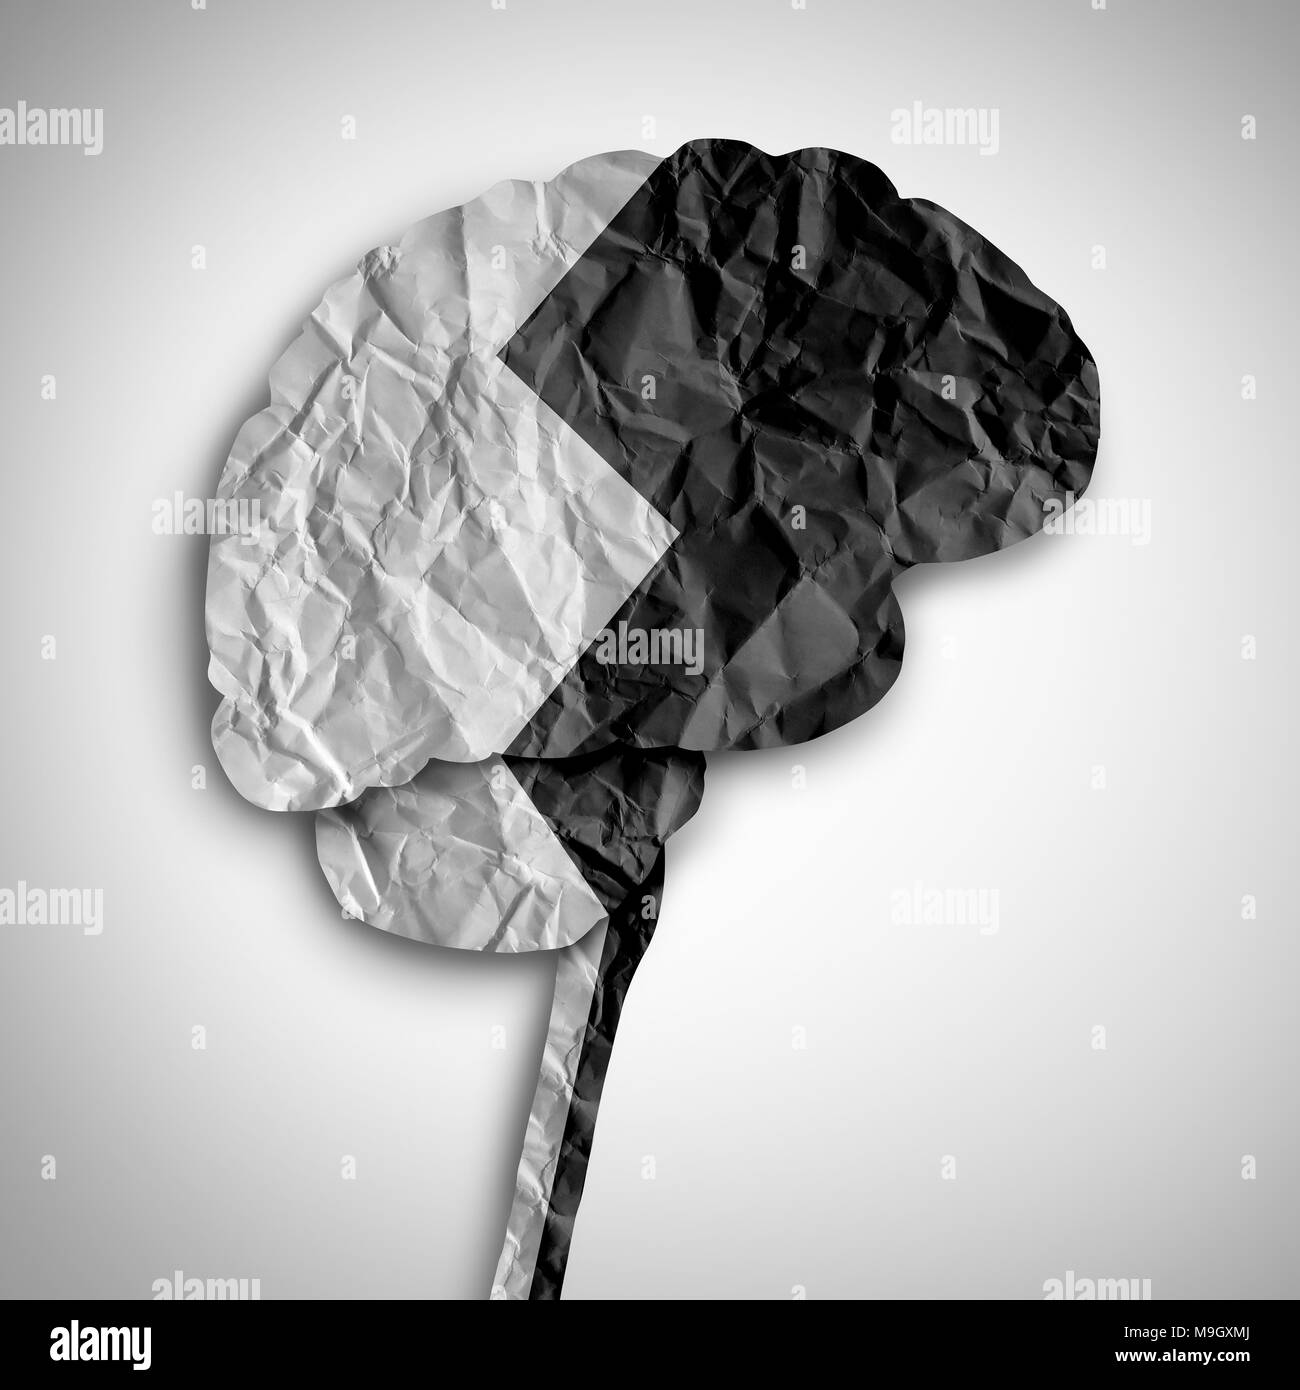 Bipolar brain disorder as a psychological illness concept as a thinking human organ divided in black and white as a medical symbol. - Stock Image